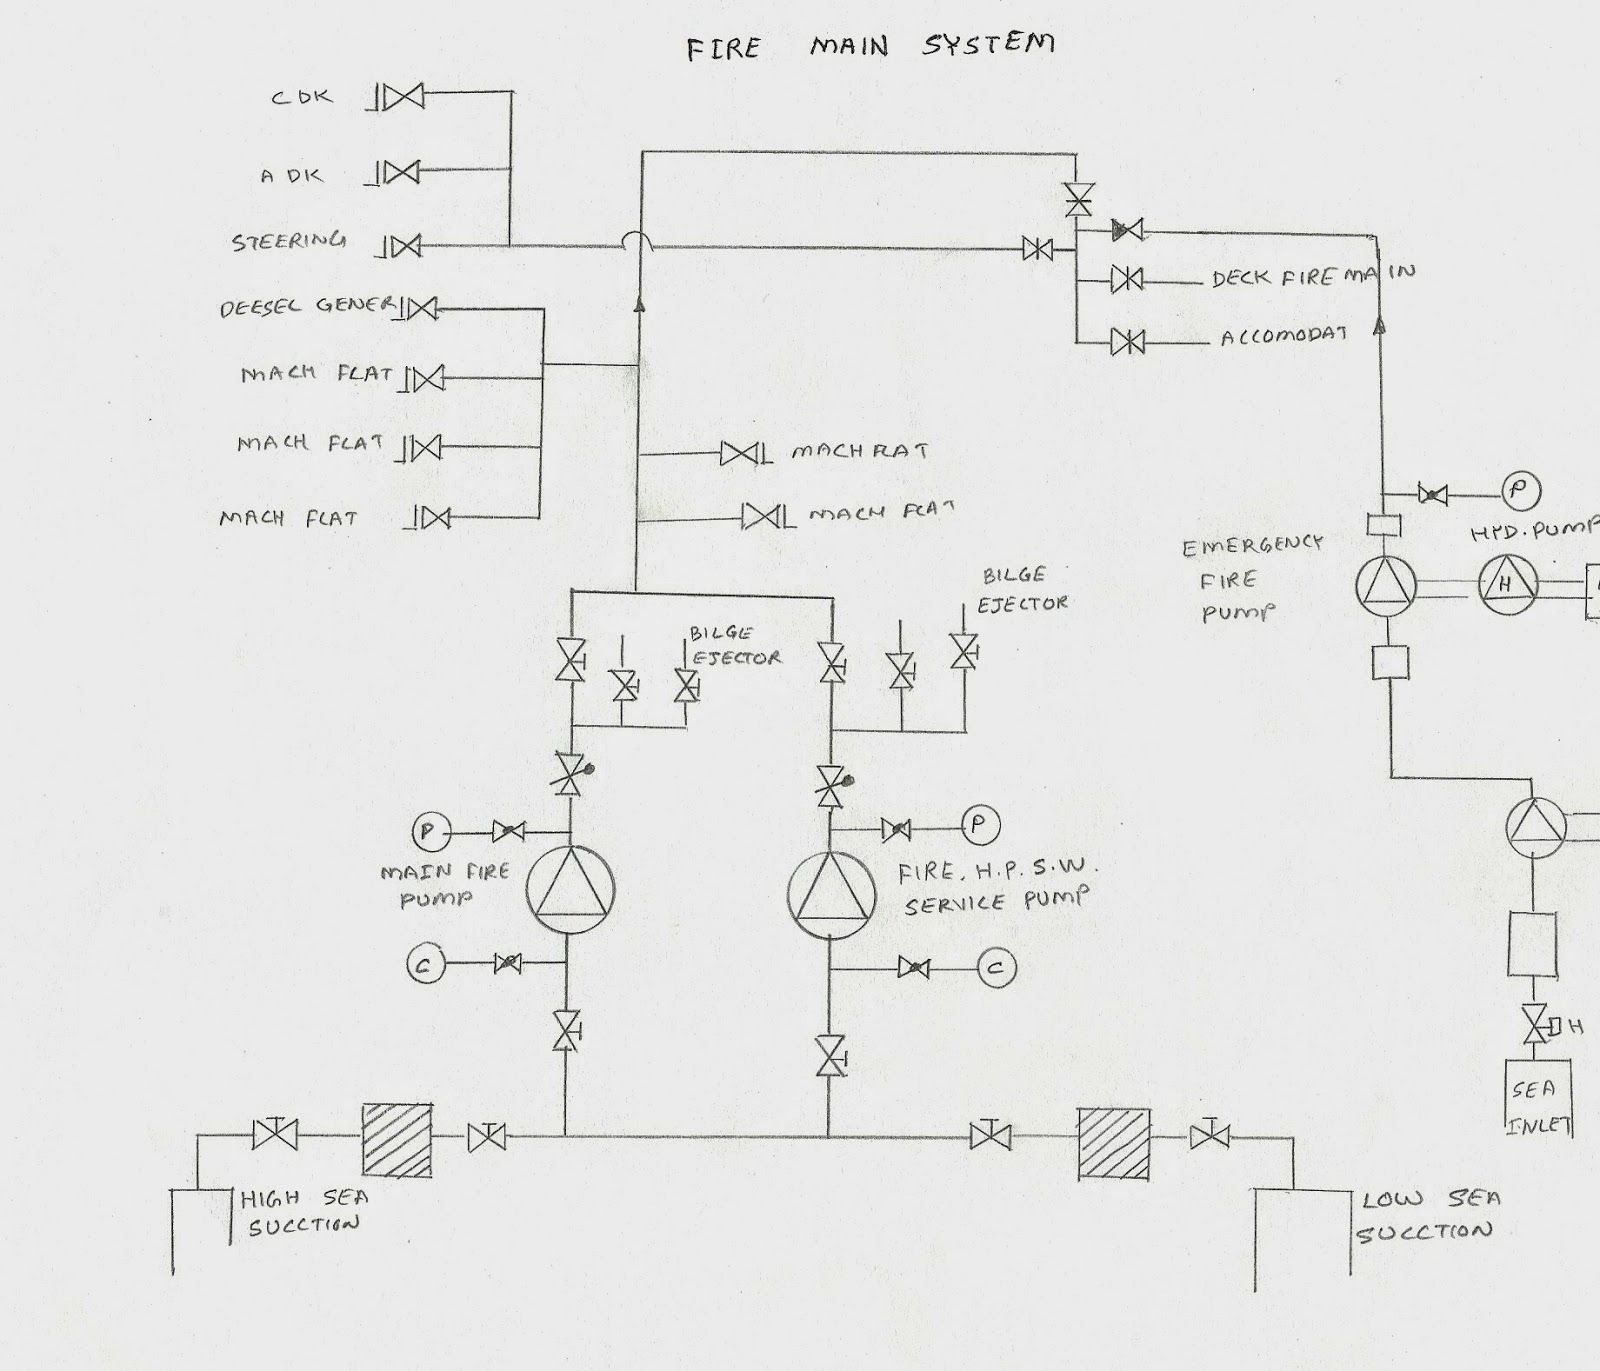 medium resolution of these line diagrams vary from ship to ship this may give you a general idea how to draw a line diagram in your tar book to identify various parts